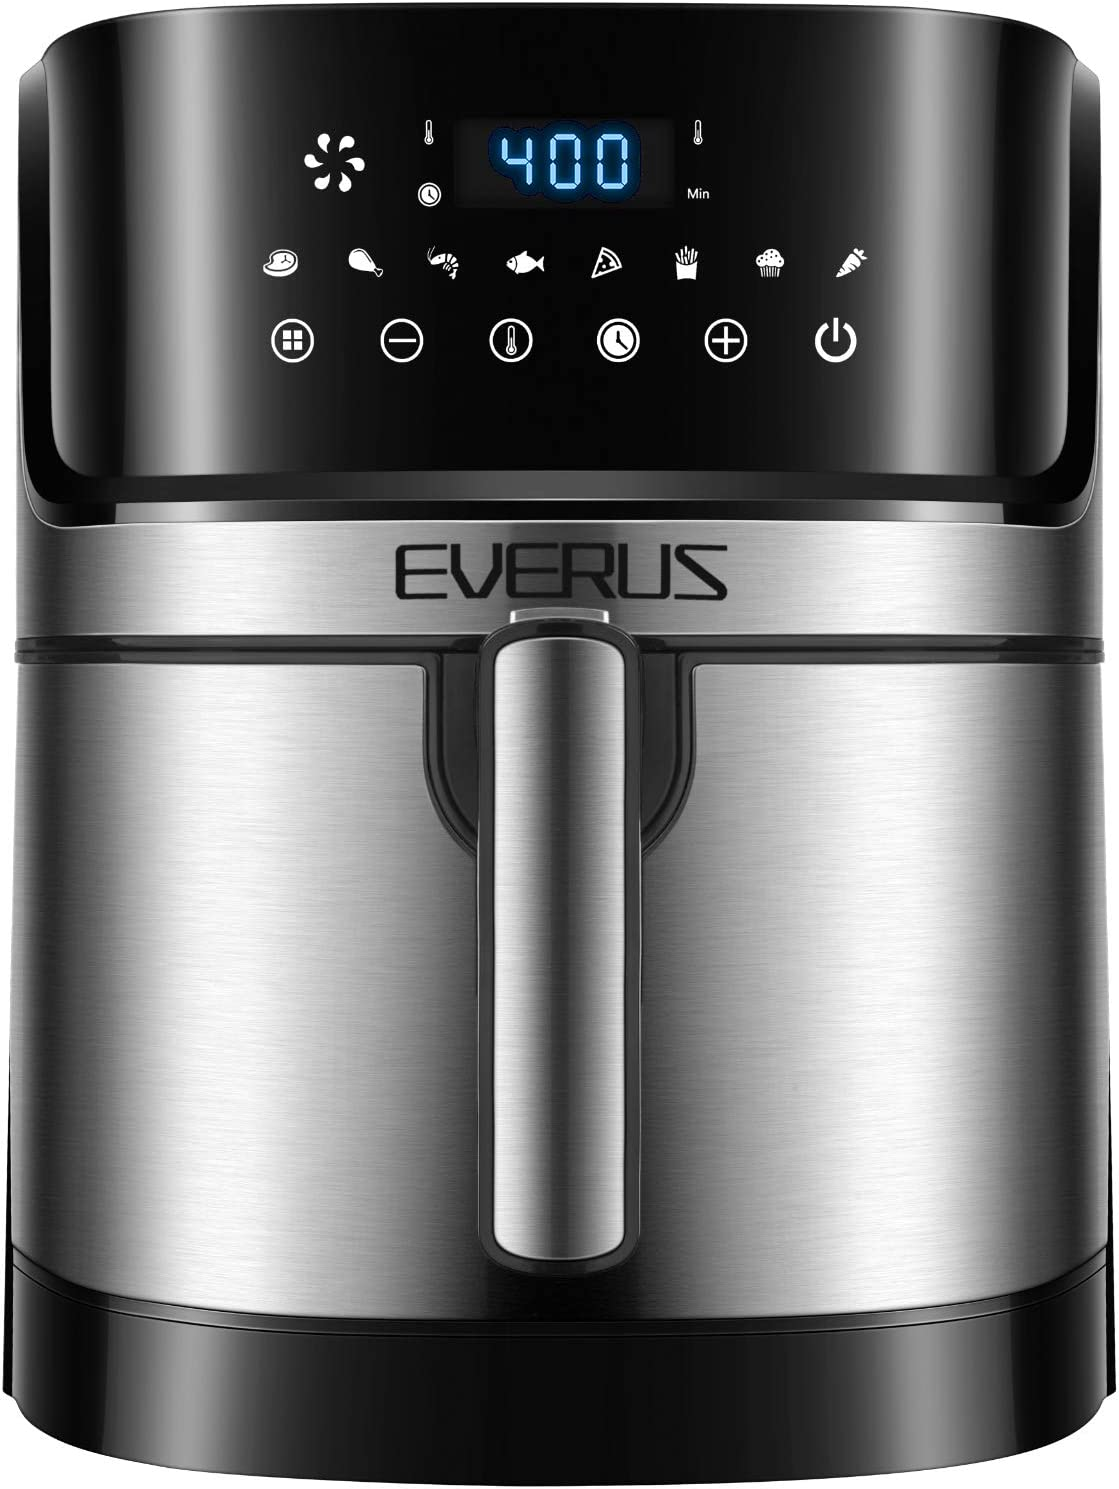 Air Fryer EVERUS 1700-Watts Hot Air Fryer Oven XL 5.8QT, Stainless Steel Electric Air Fryer Oilless Cooker with 8 Presets, Nonstick Square Basket, 2 Years Warranty, ETL Listed